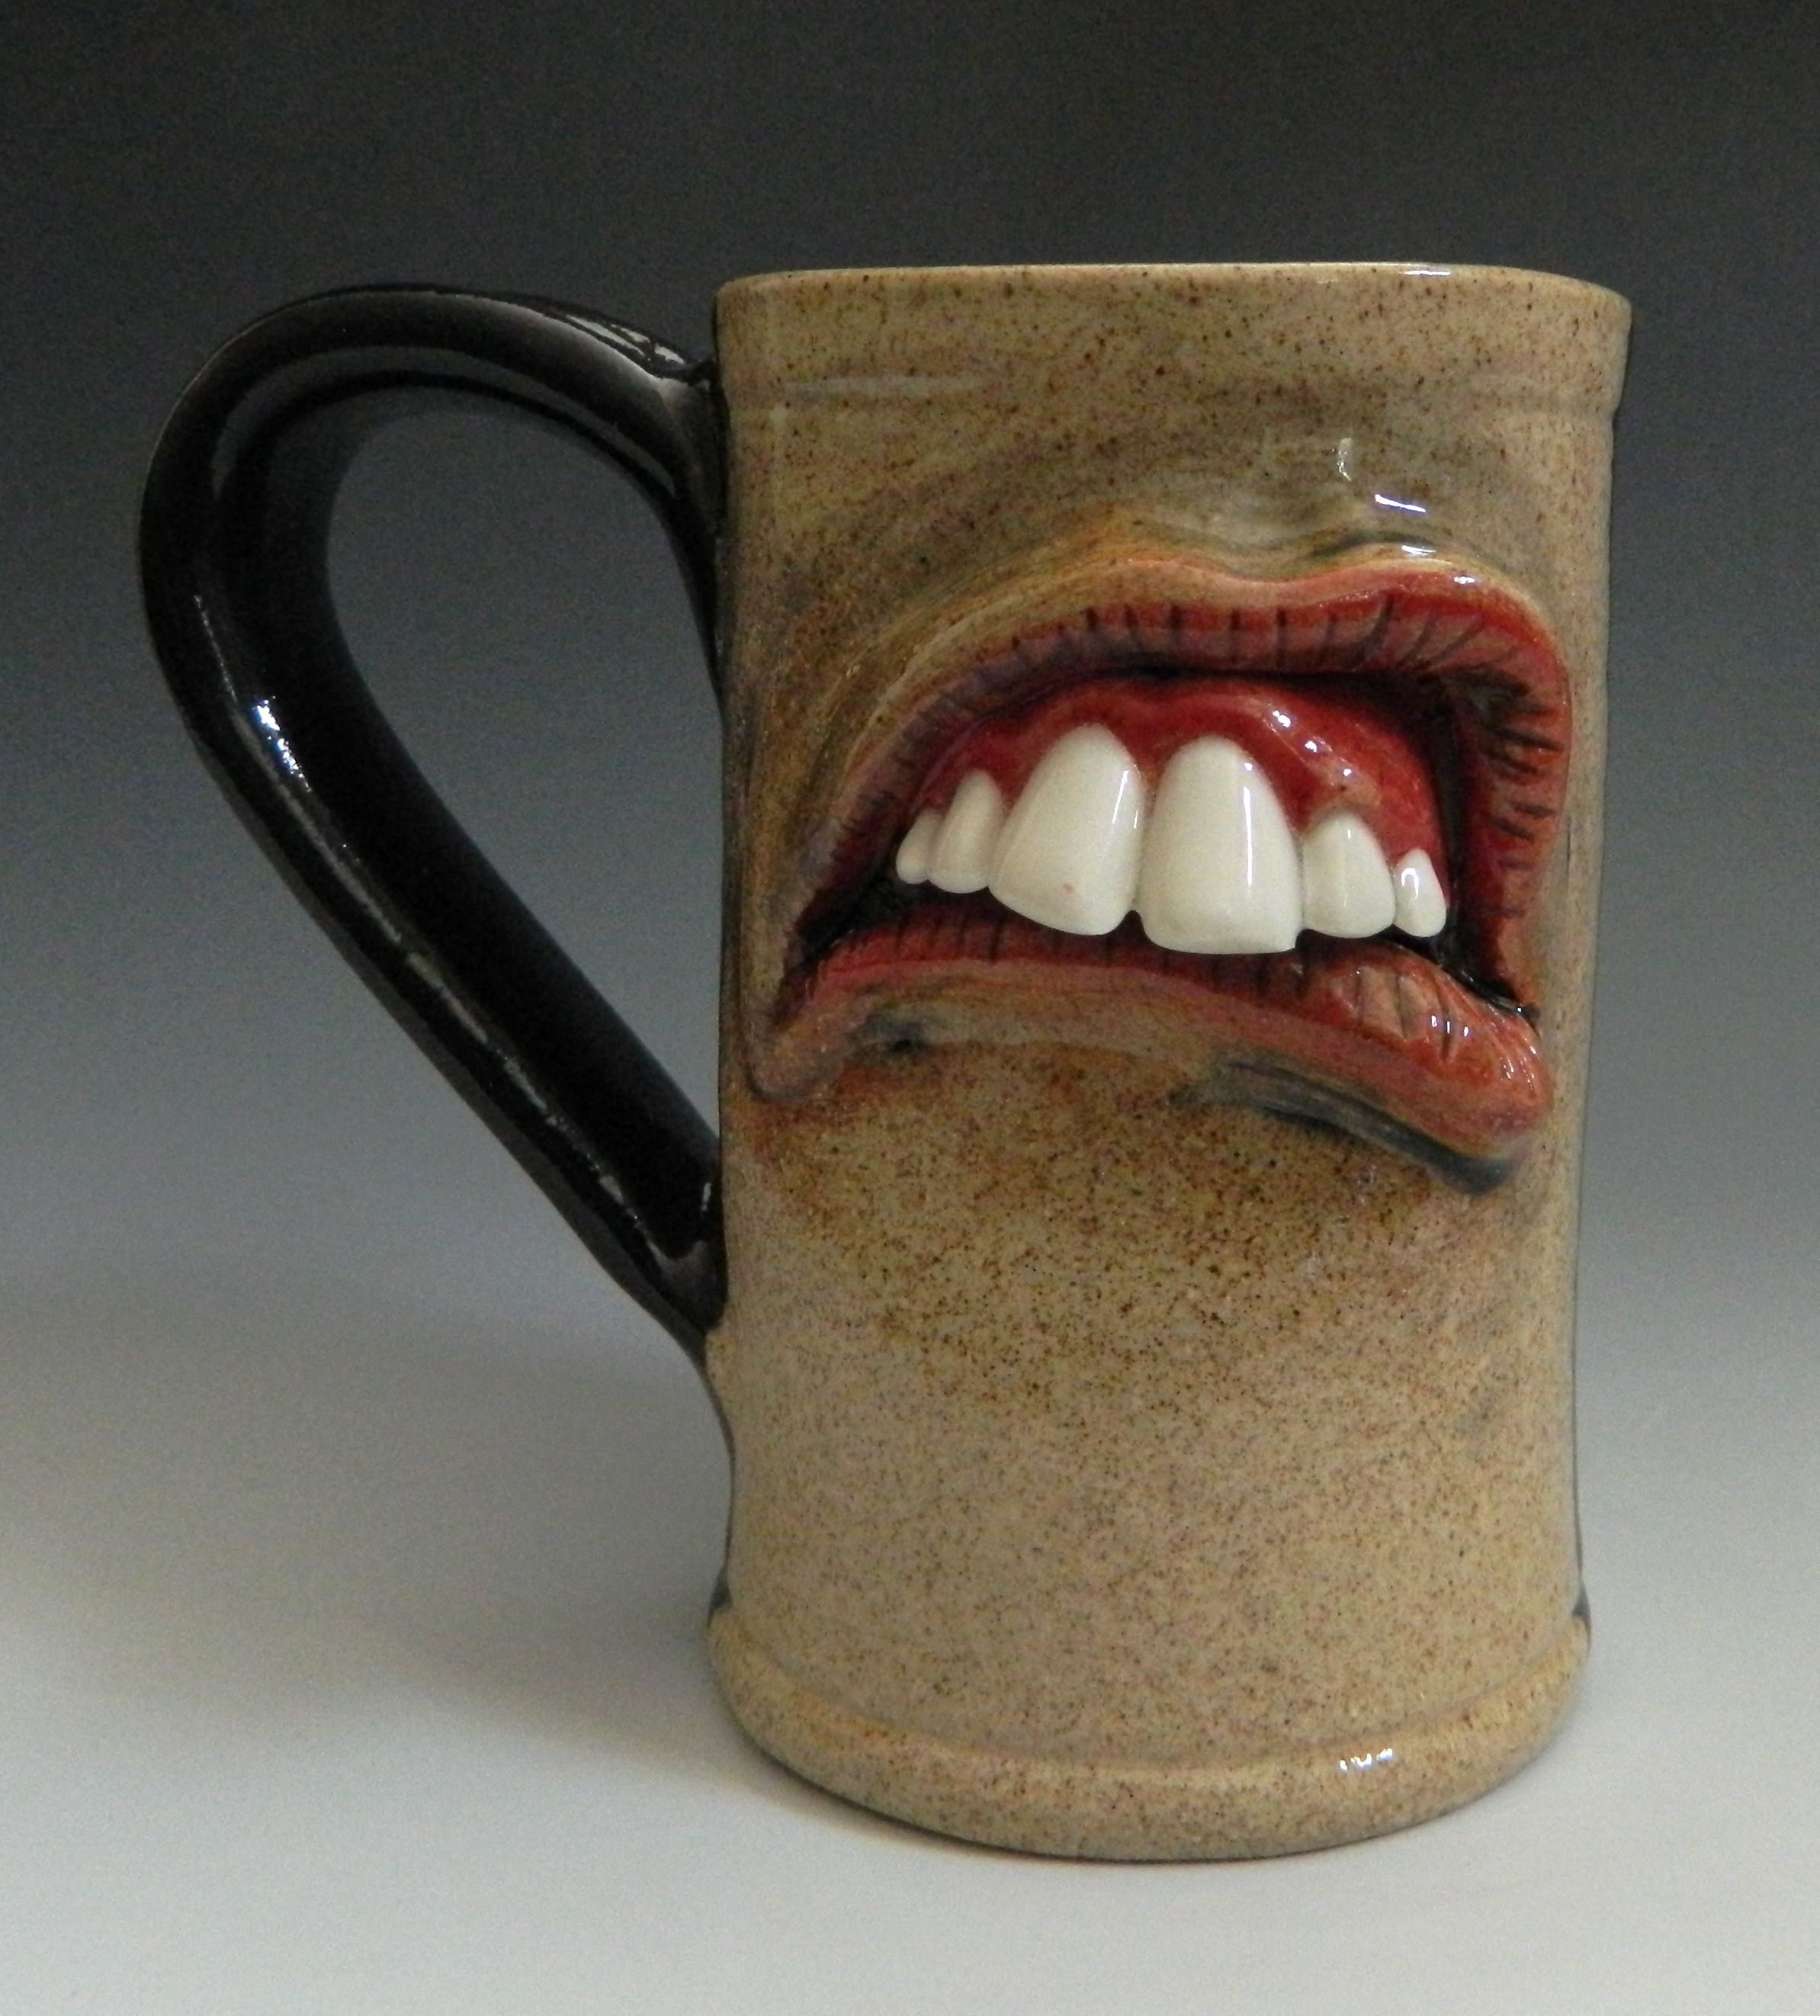 Weird Mugs Darted Pottery Mugs Nice For Work When Your Boss Tells